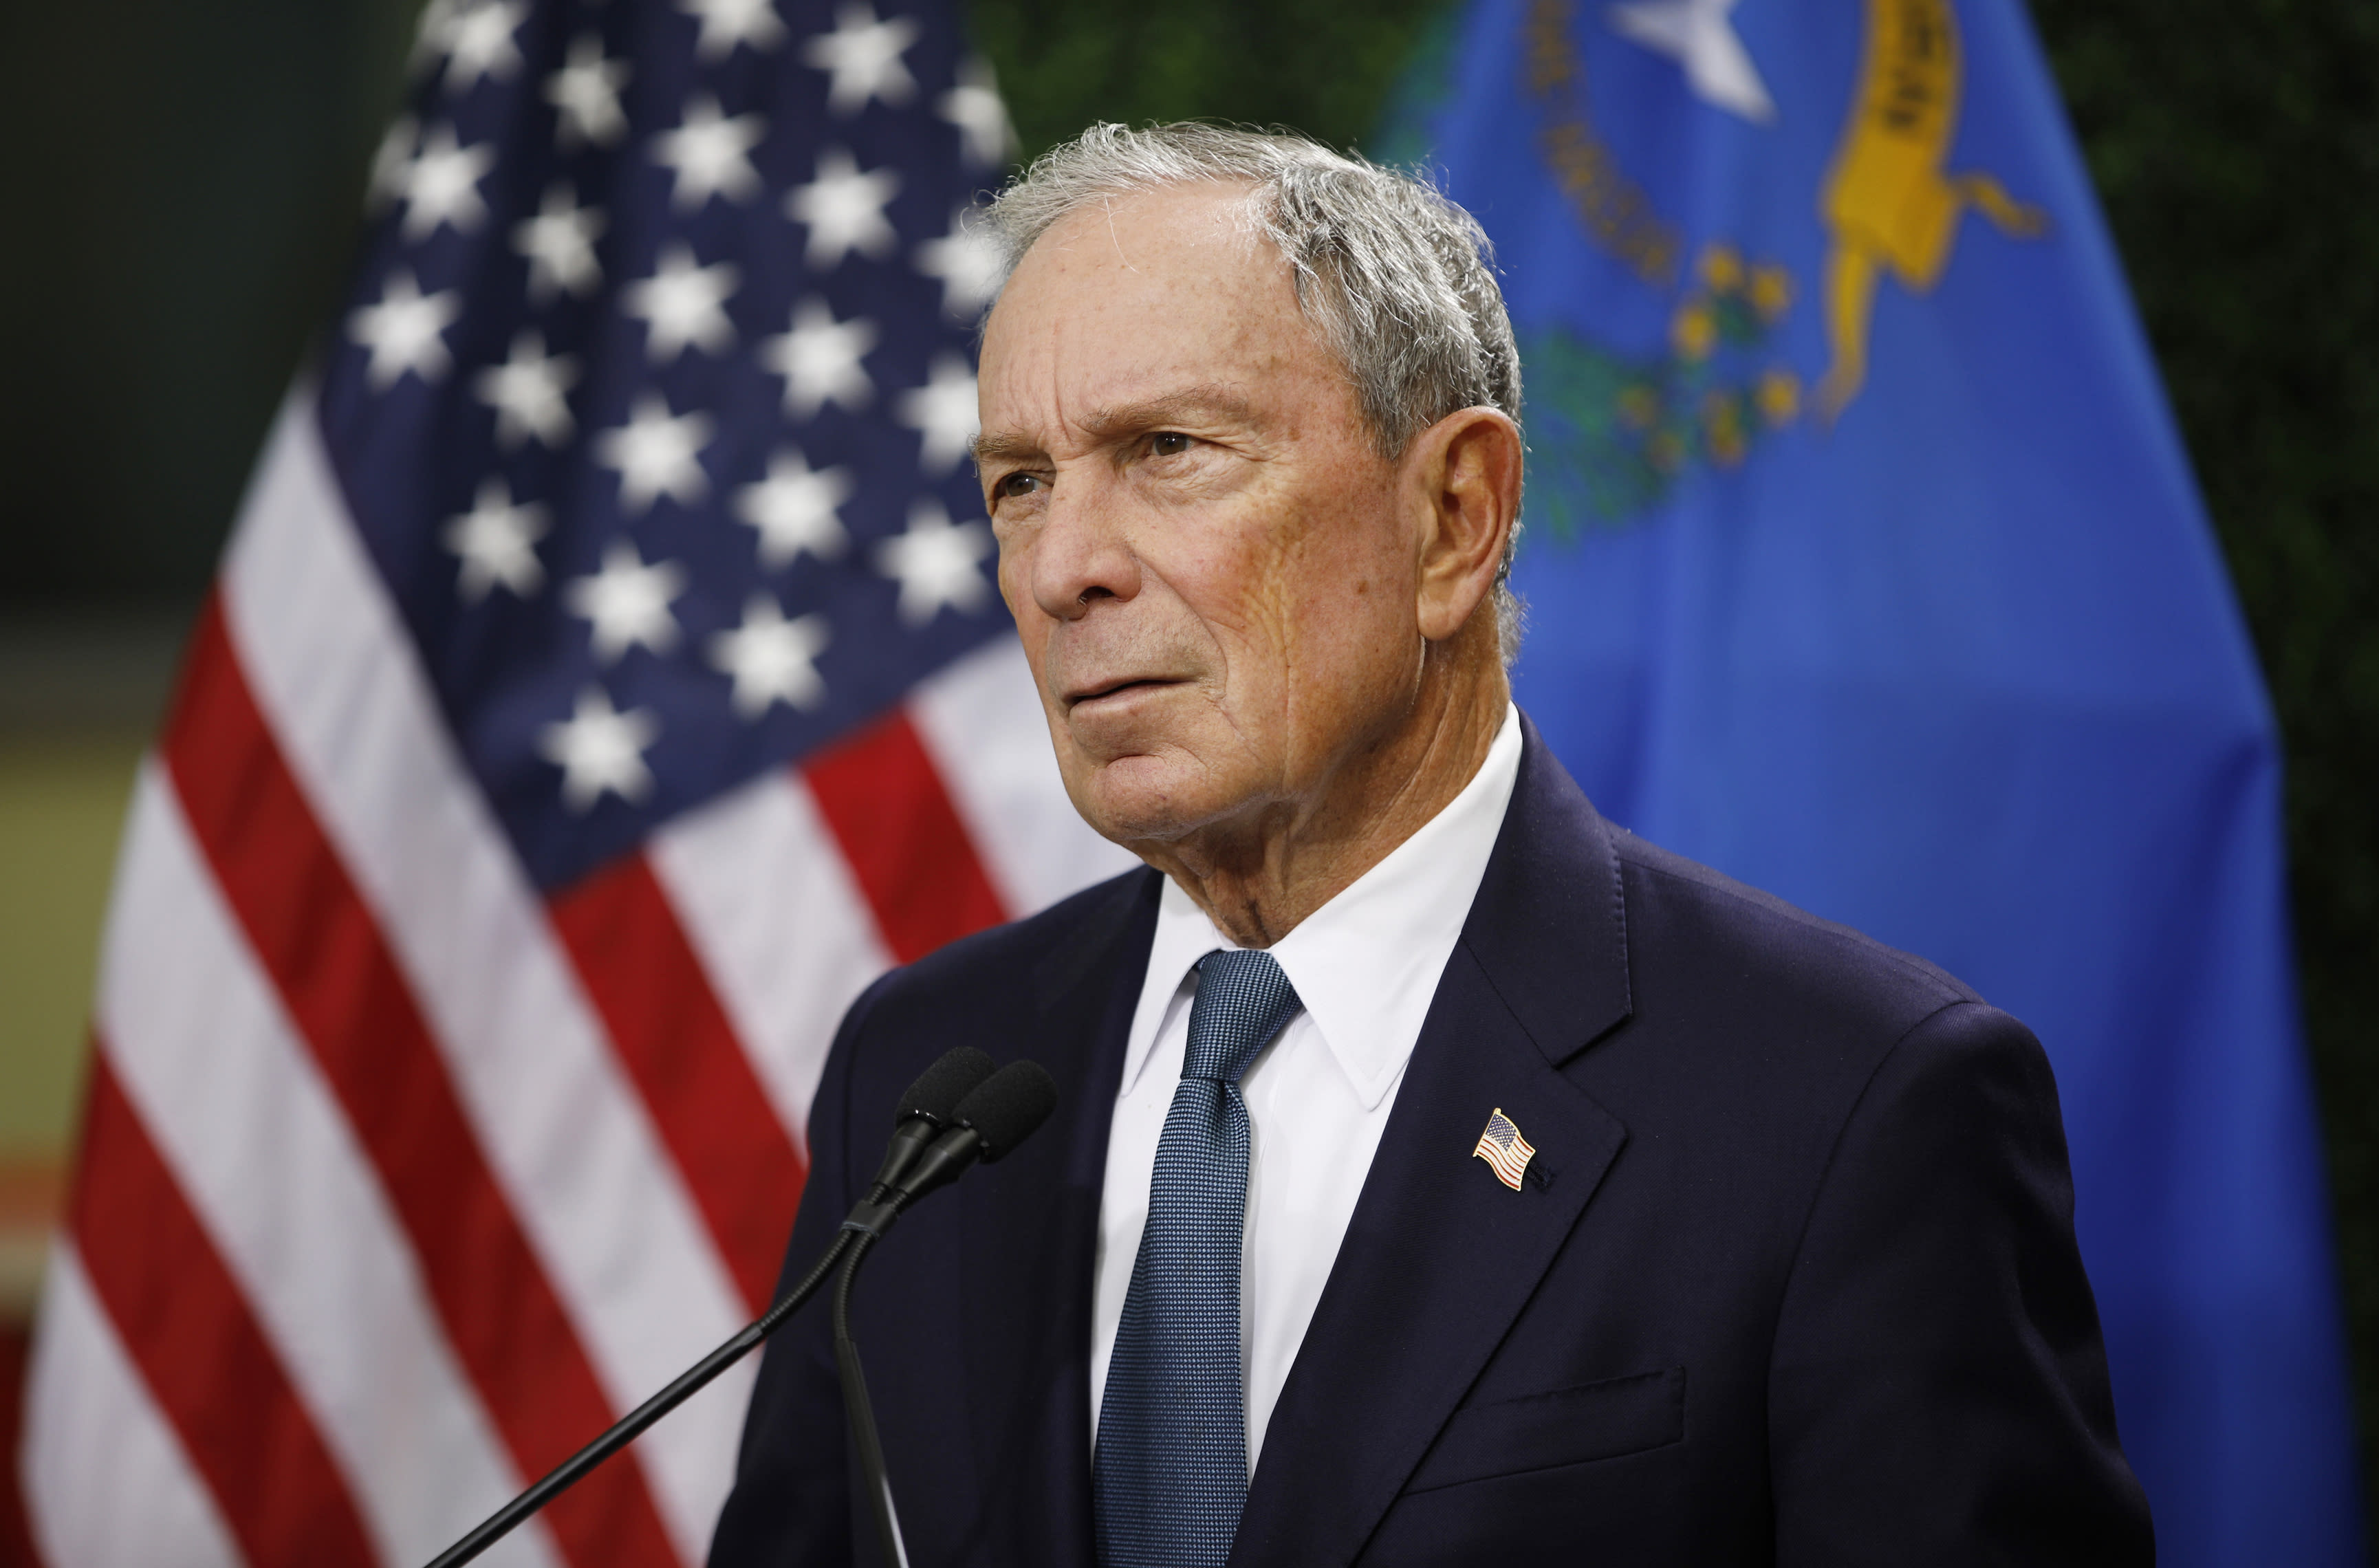 Michael Bloomberg Apologizes for